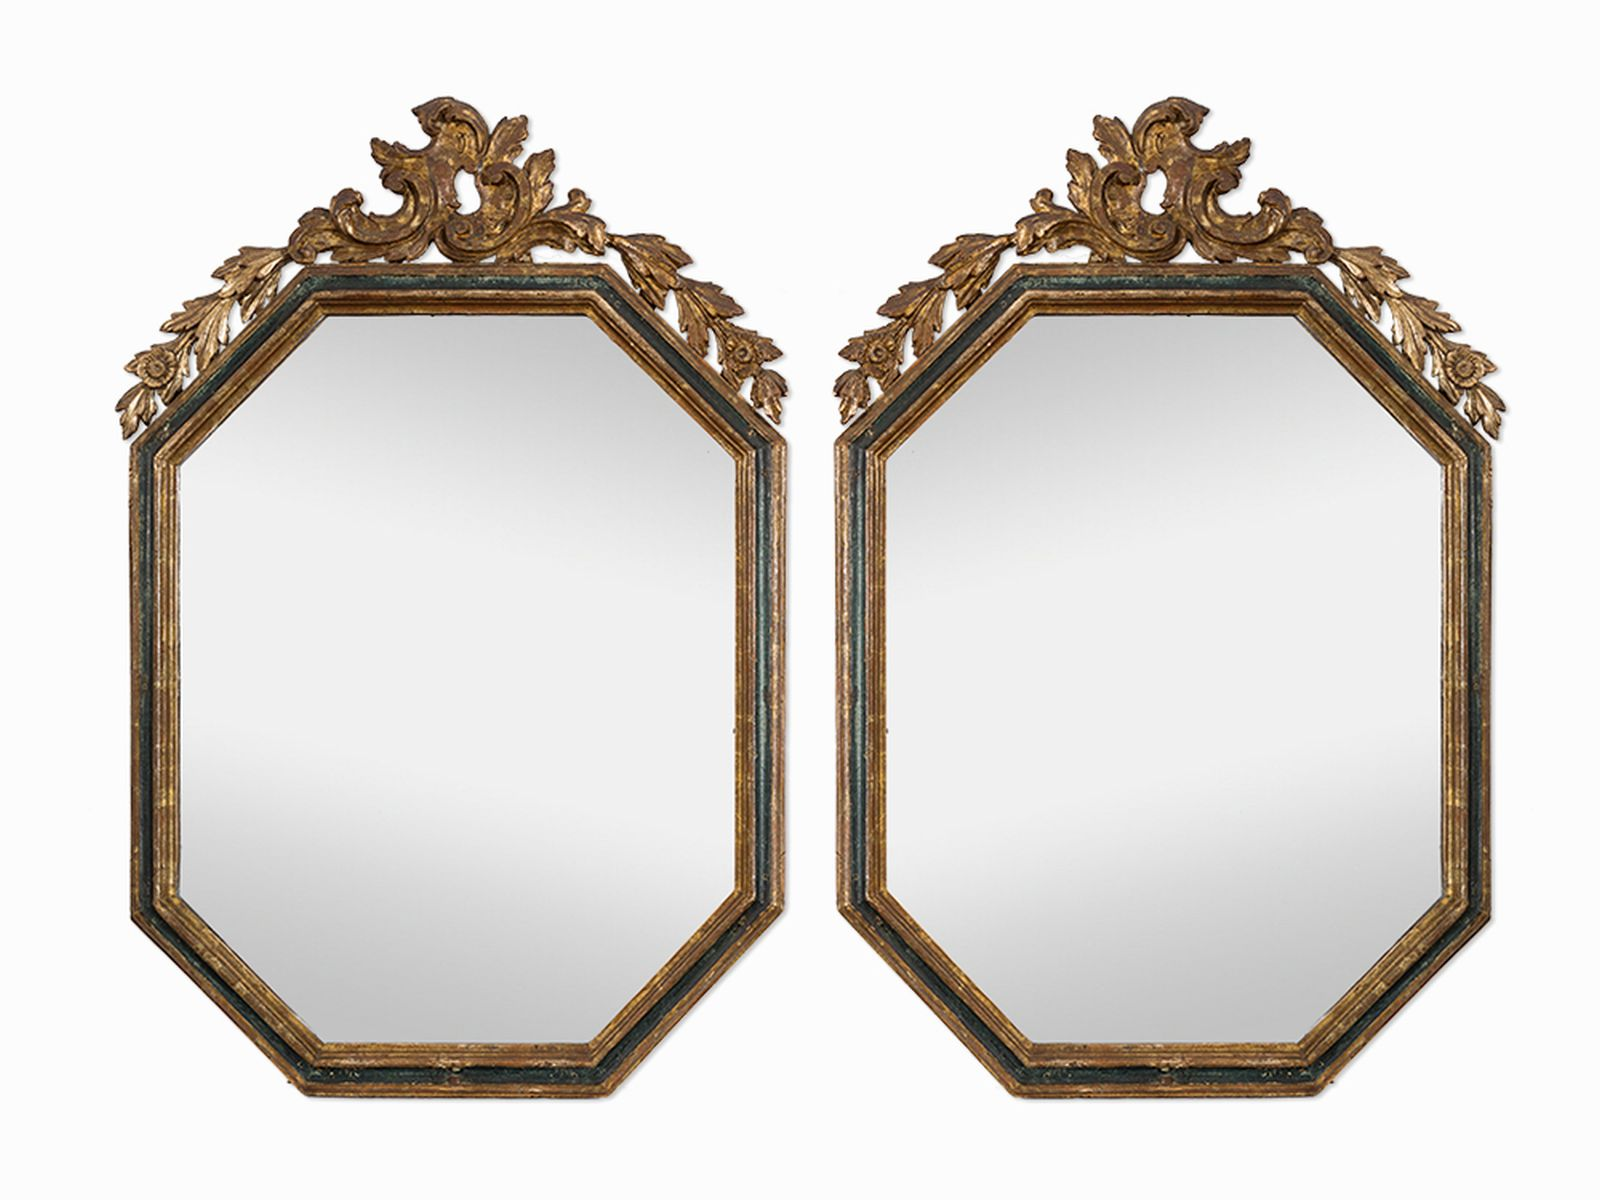 #111 Pair of Wall Mirrors, Spain, 18th C. | Paar Wandspiegel, Spanien, 18. Jh. Image